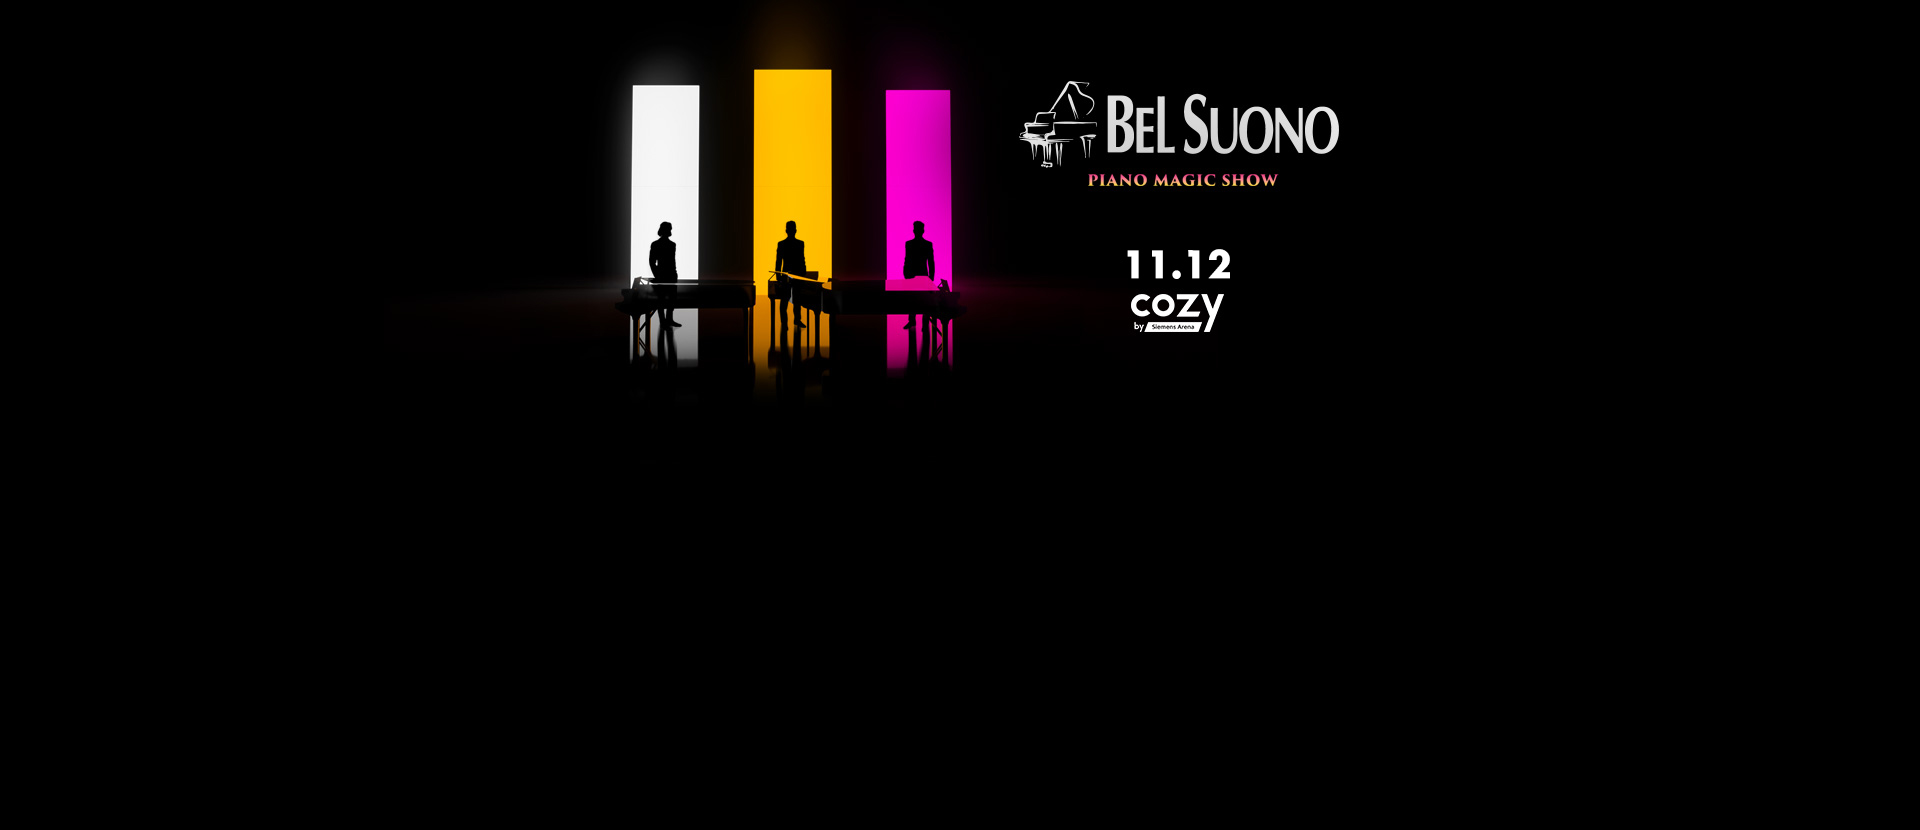 BEL SUONO. PIANO MAGIC SHOW